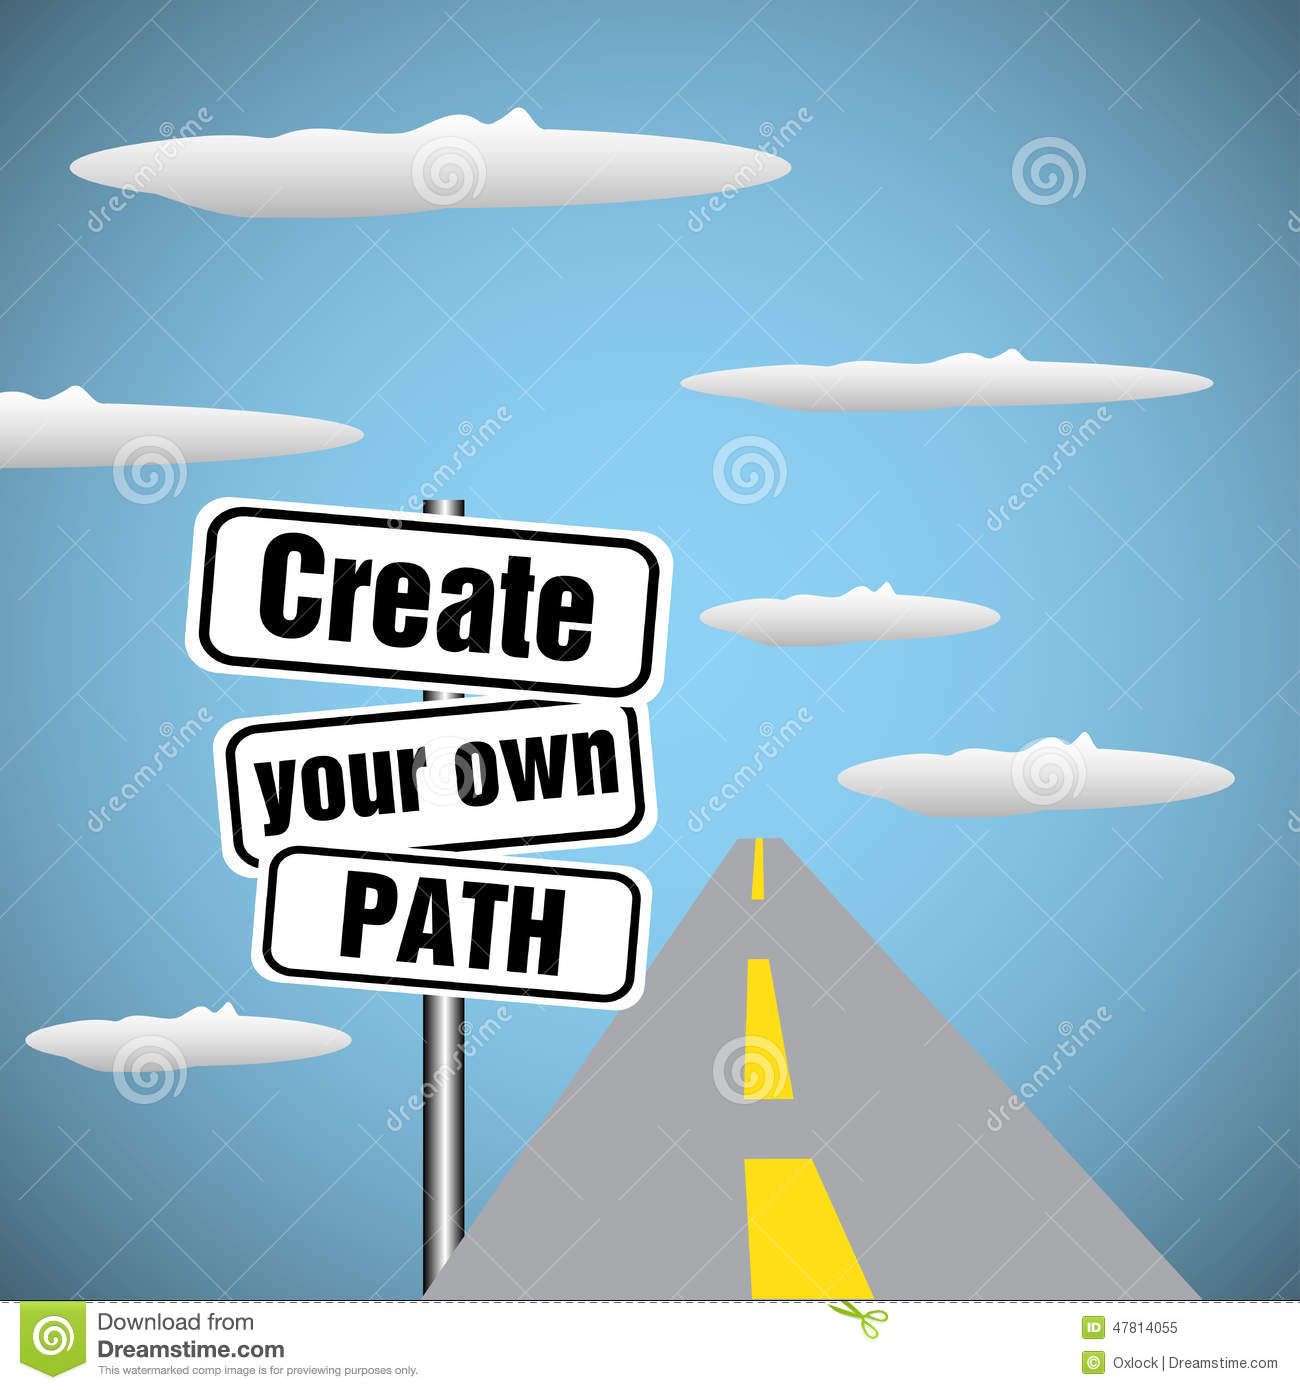 Create your own path stock vector image 47814055 for Create your own building